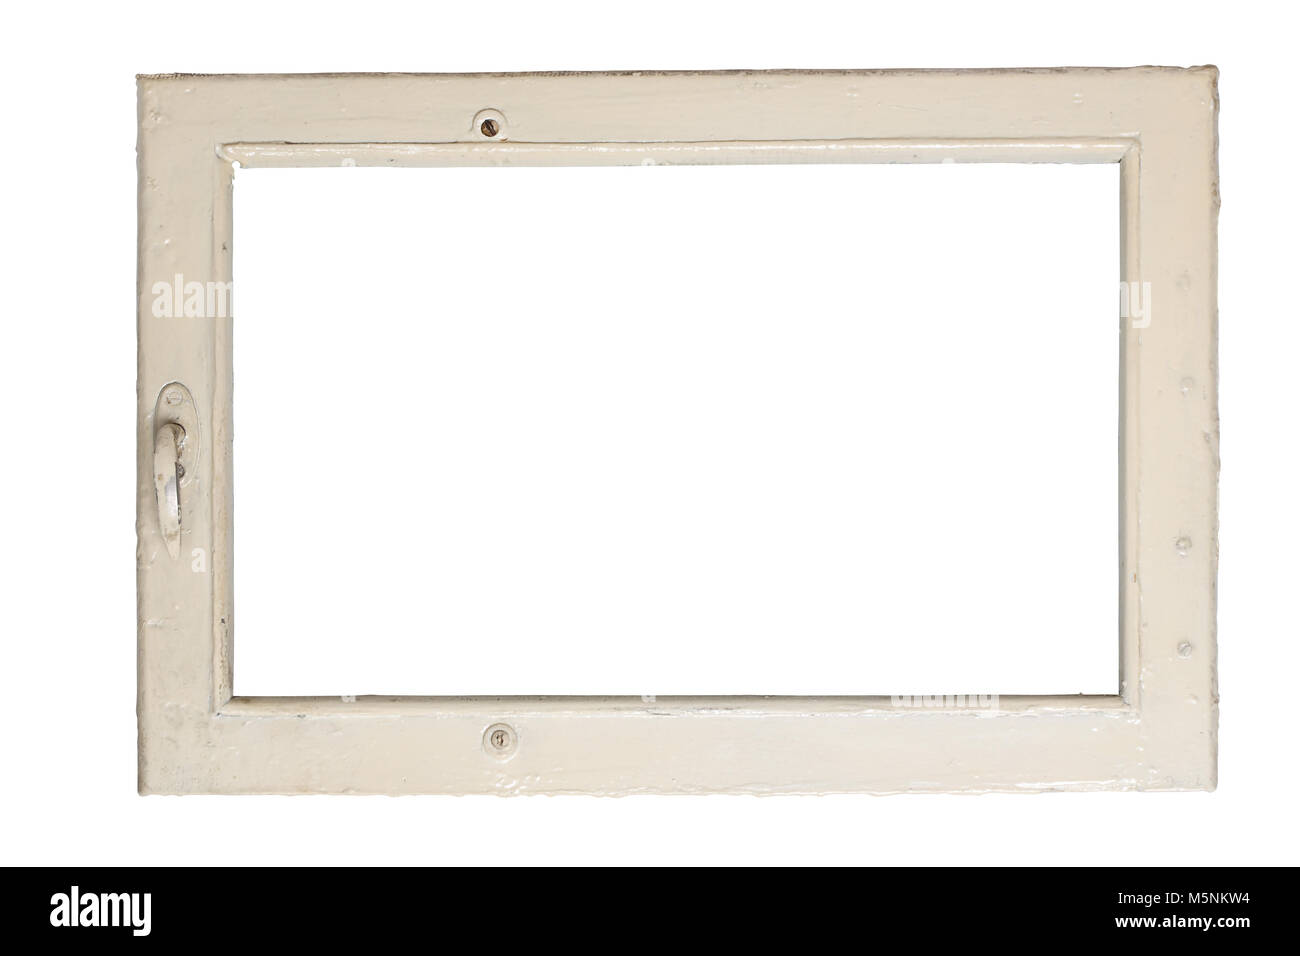 Very old window frame isolated on white background with clipping ...